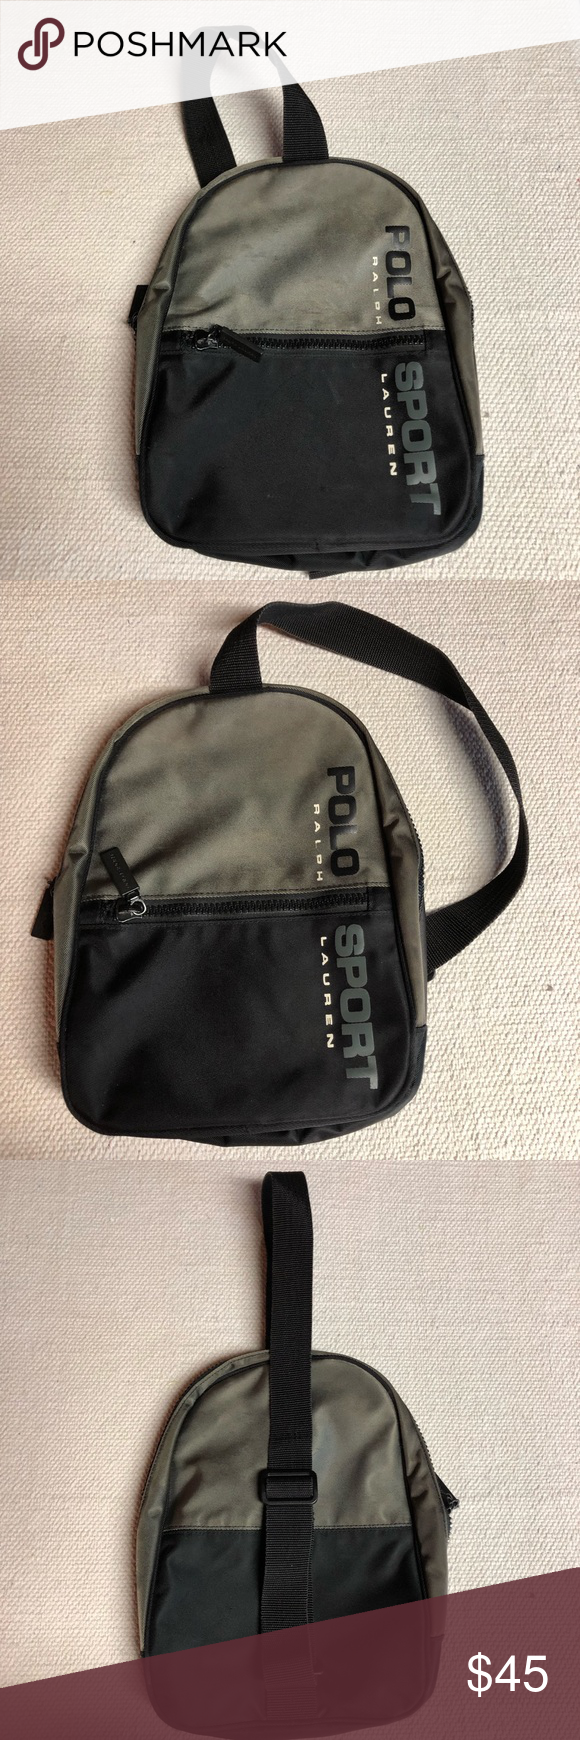 ab0761d644 Vintage Ralph Lauren Polo Sport Nylon Sling Bag Up for sale is an awesome  Vintage Ralph